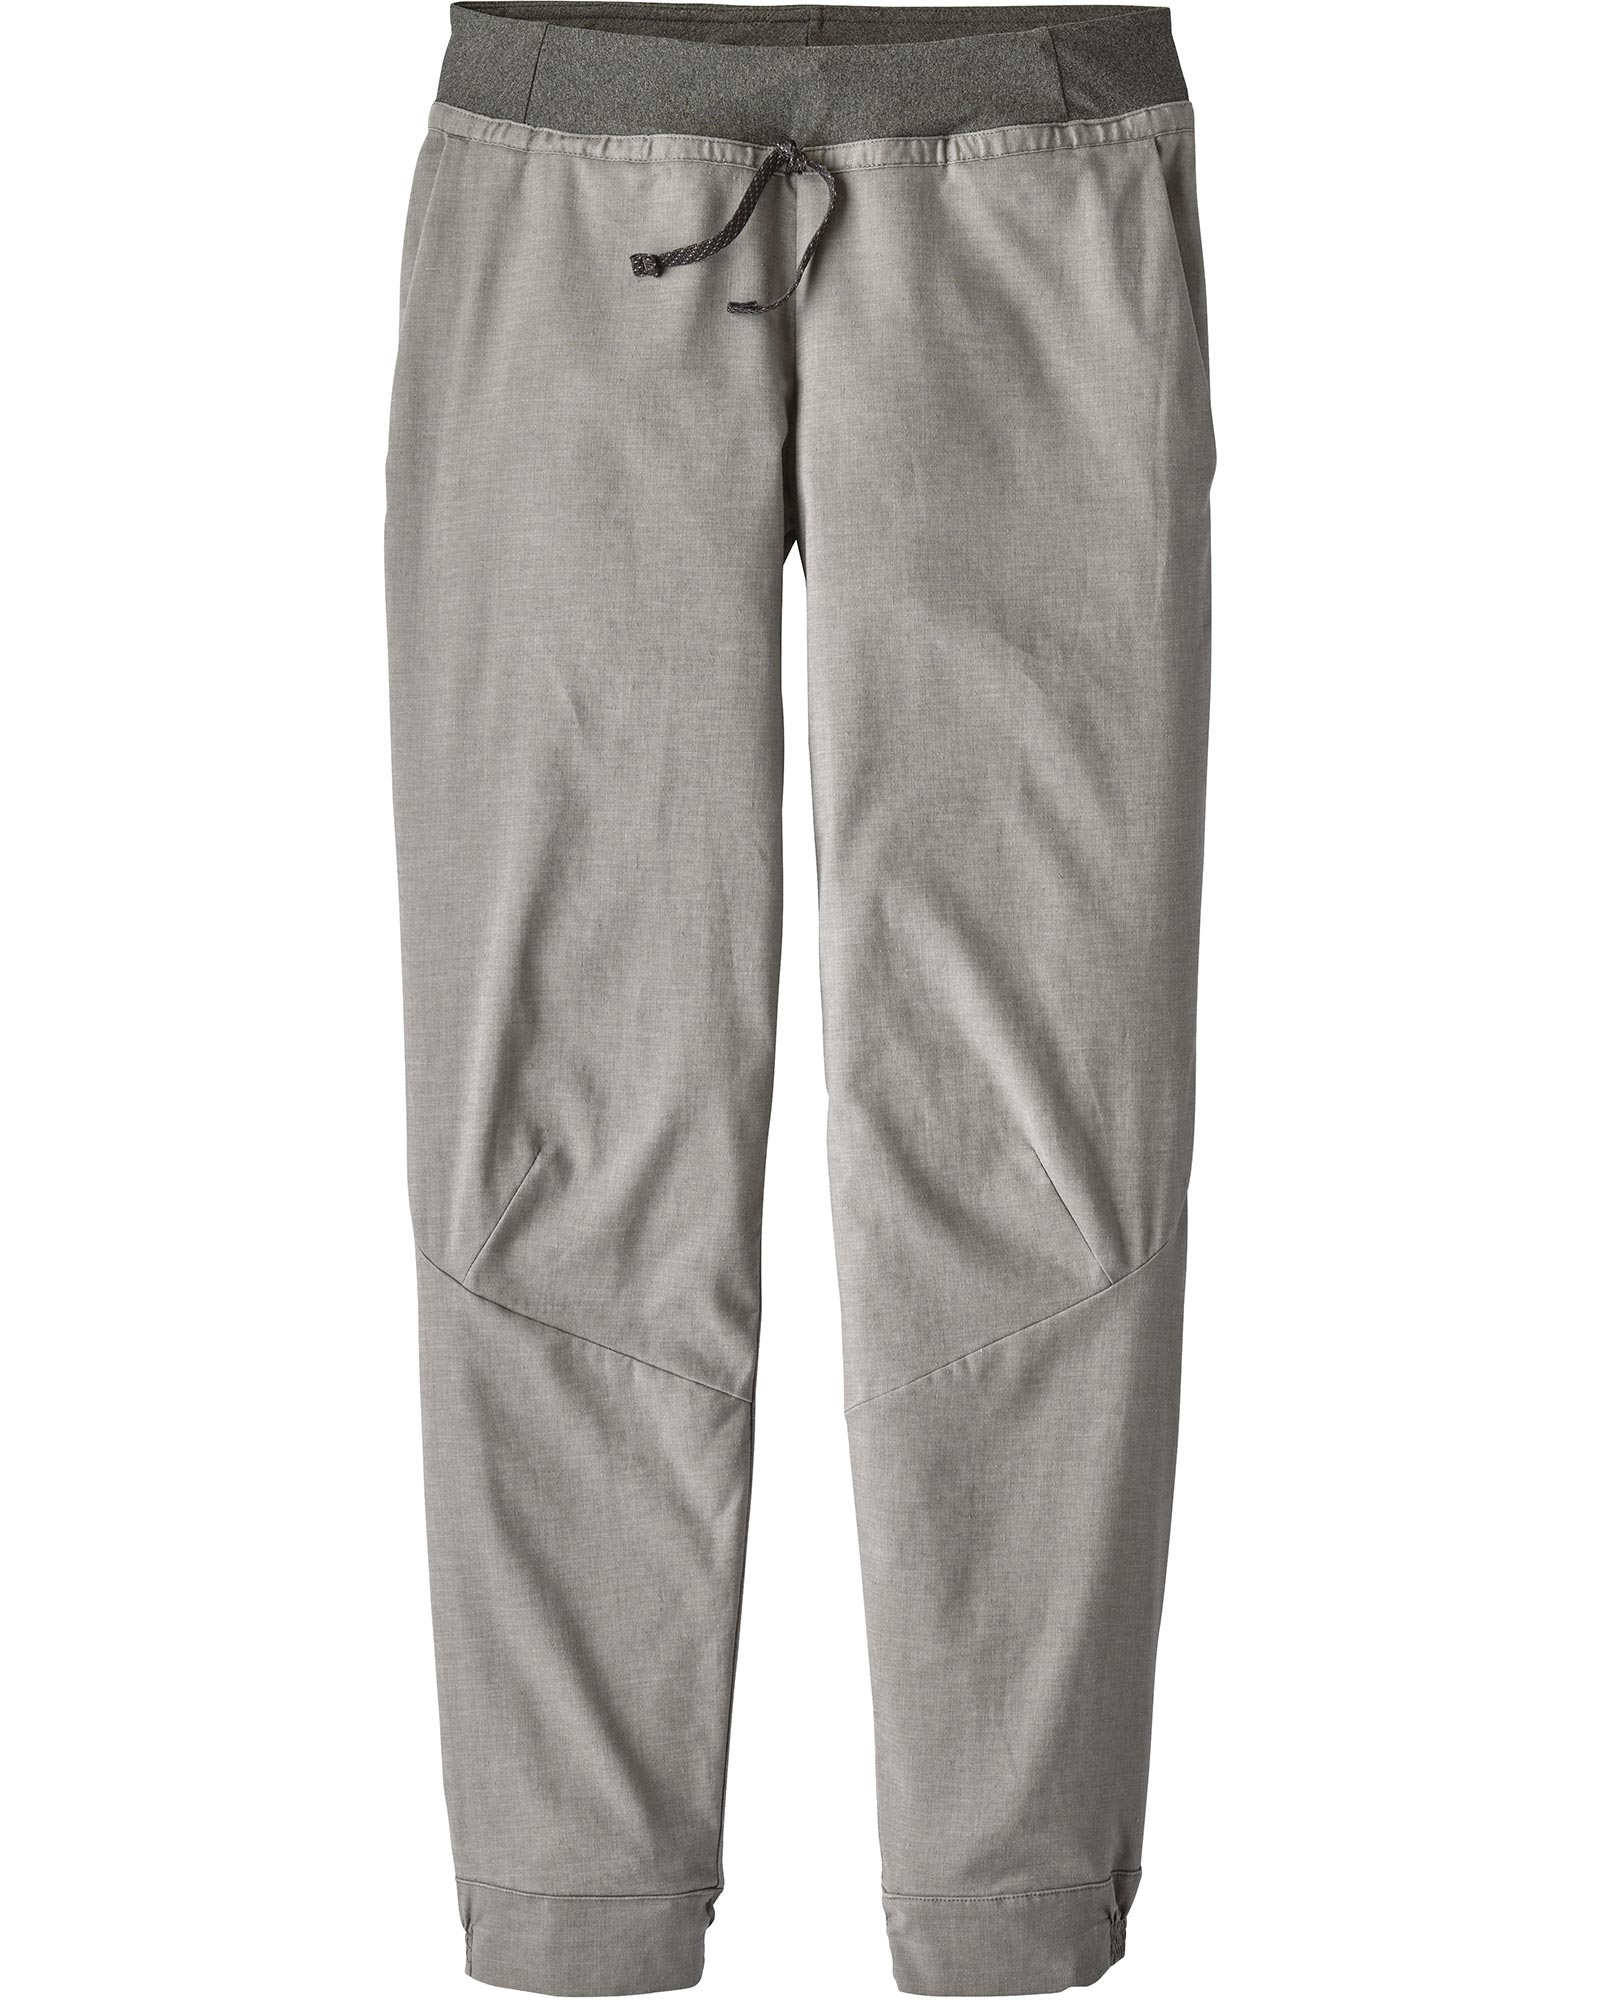 Patagonia Women's Hampi Rock Pants 0